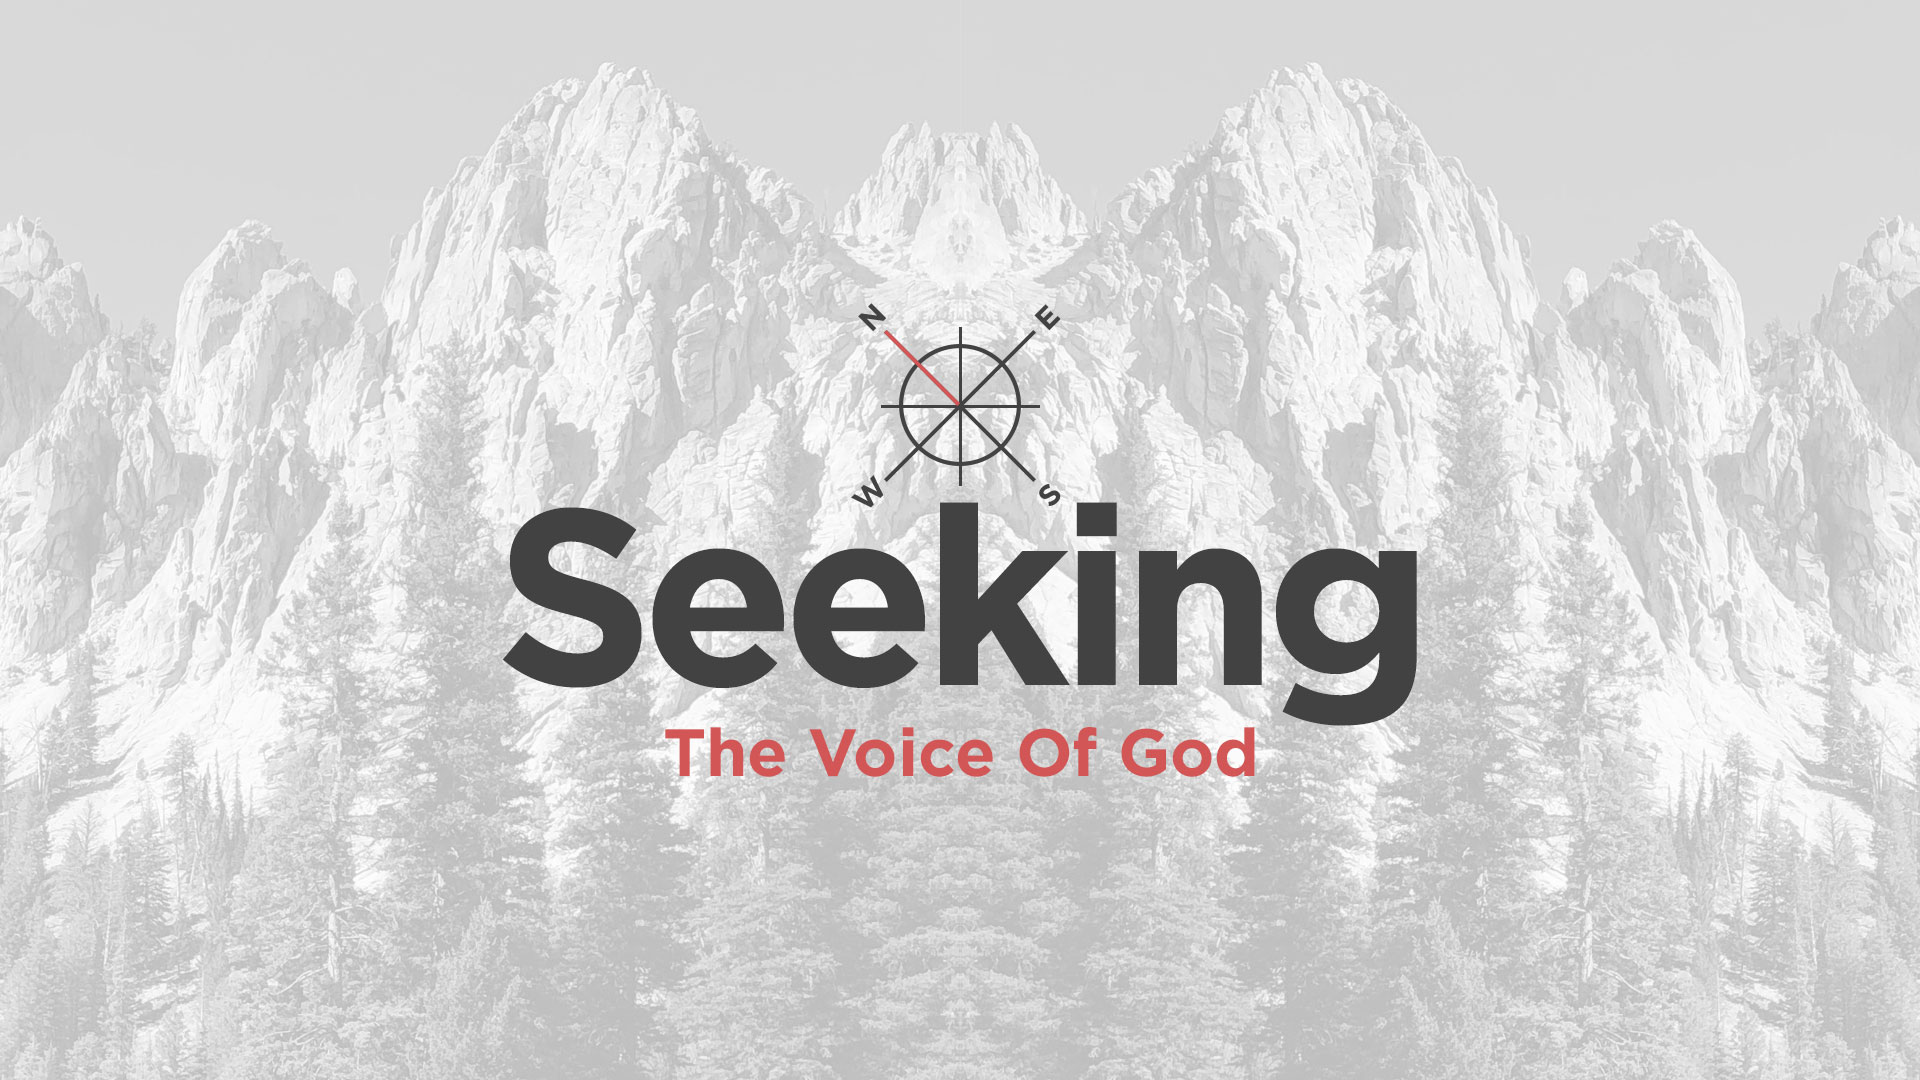 Seeking The Voice Of God